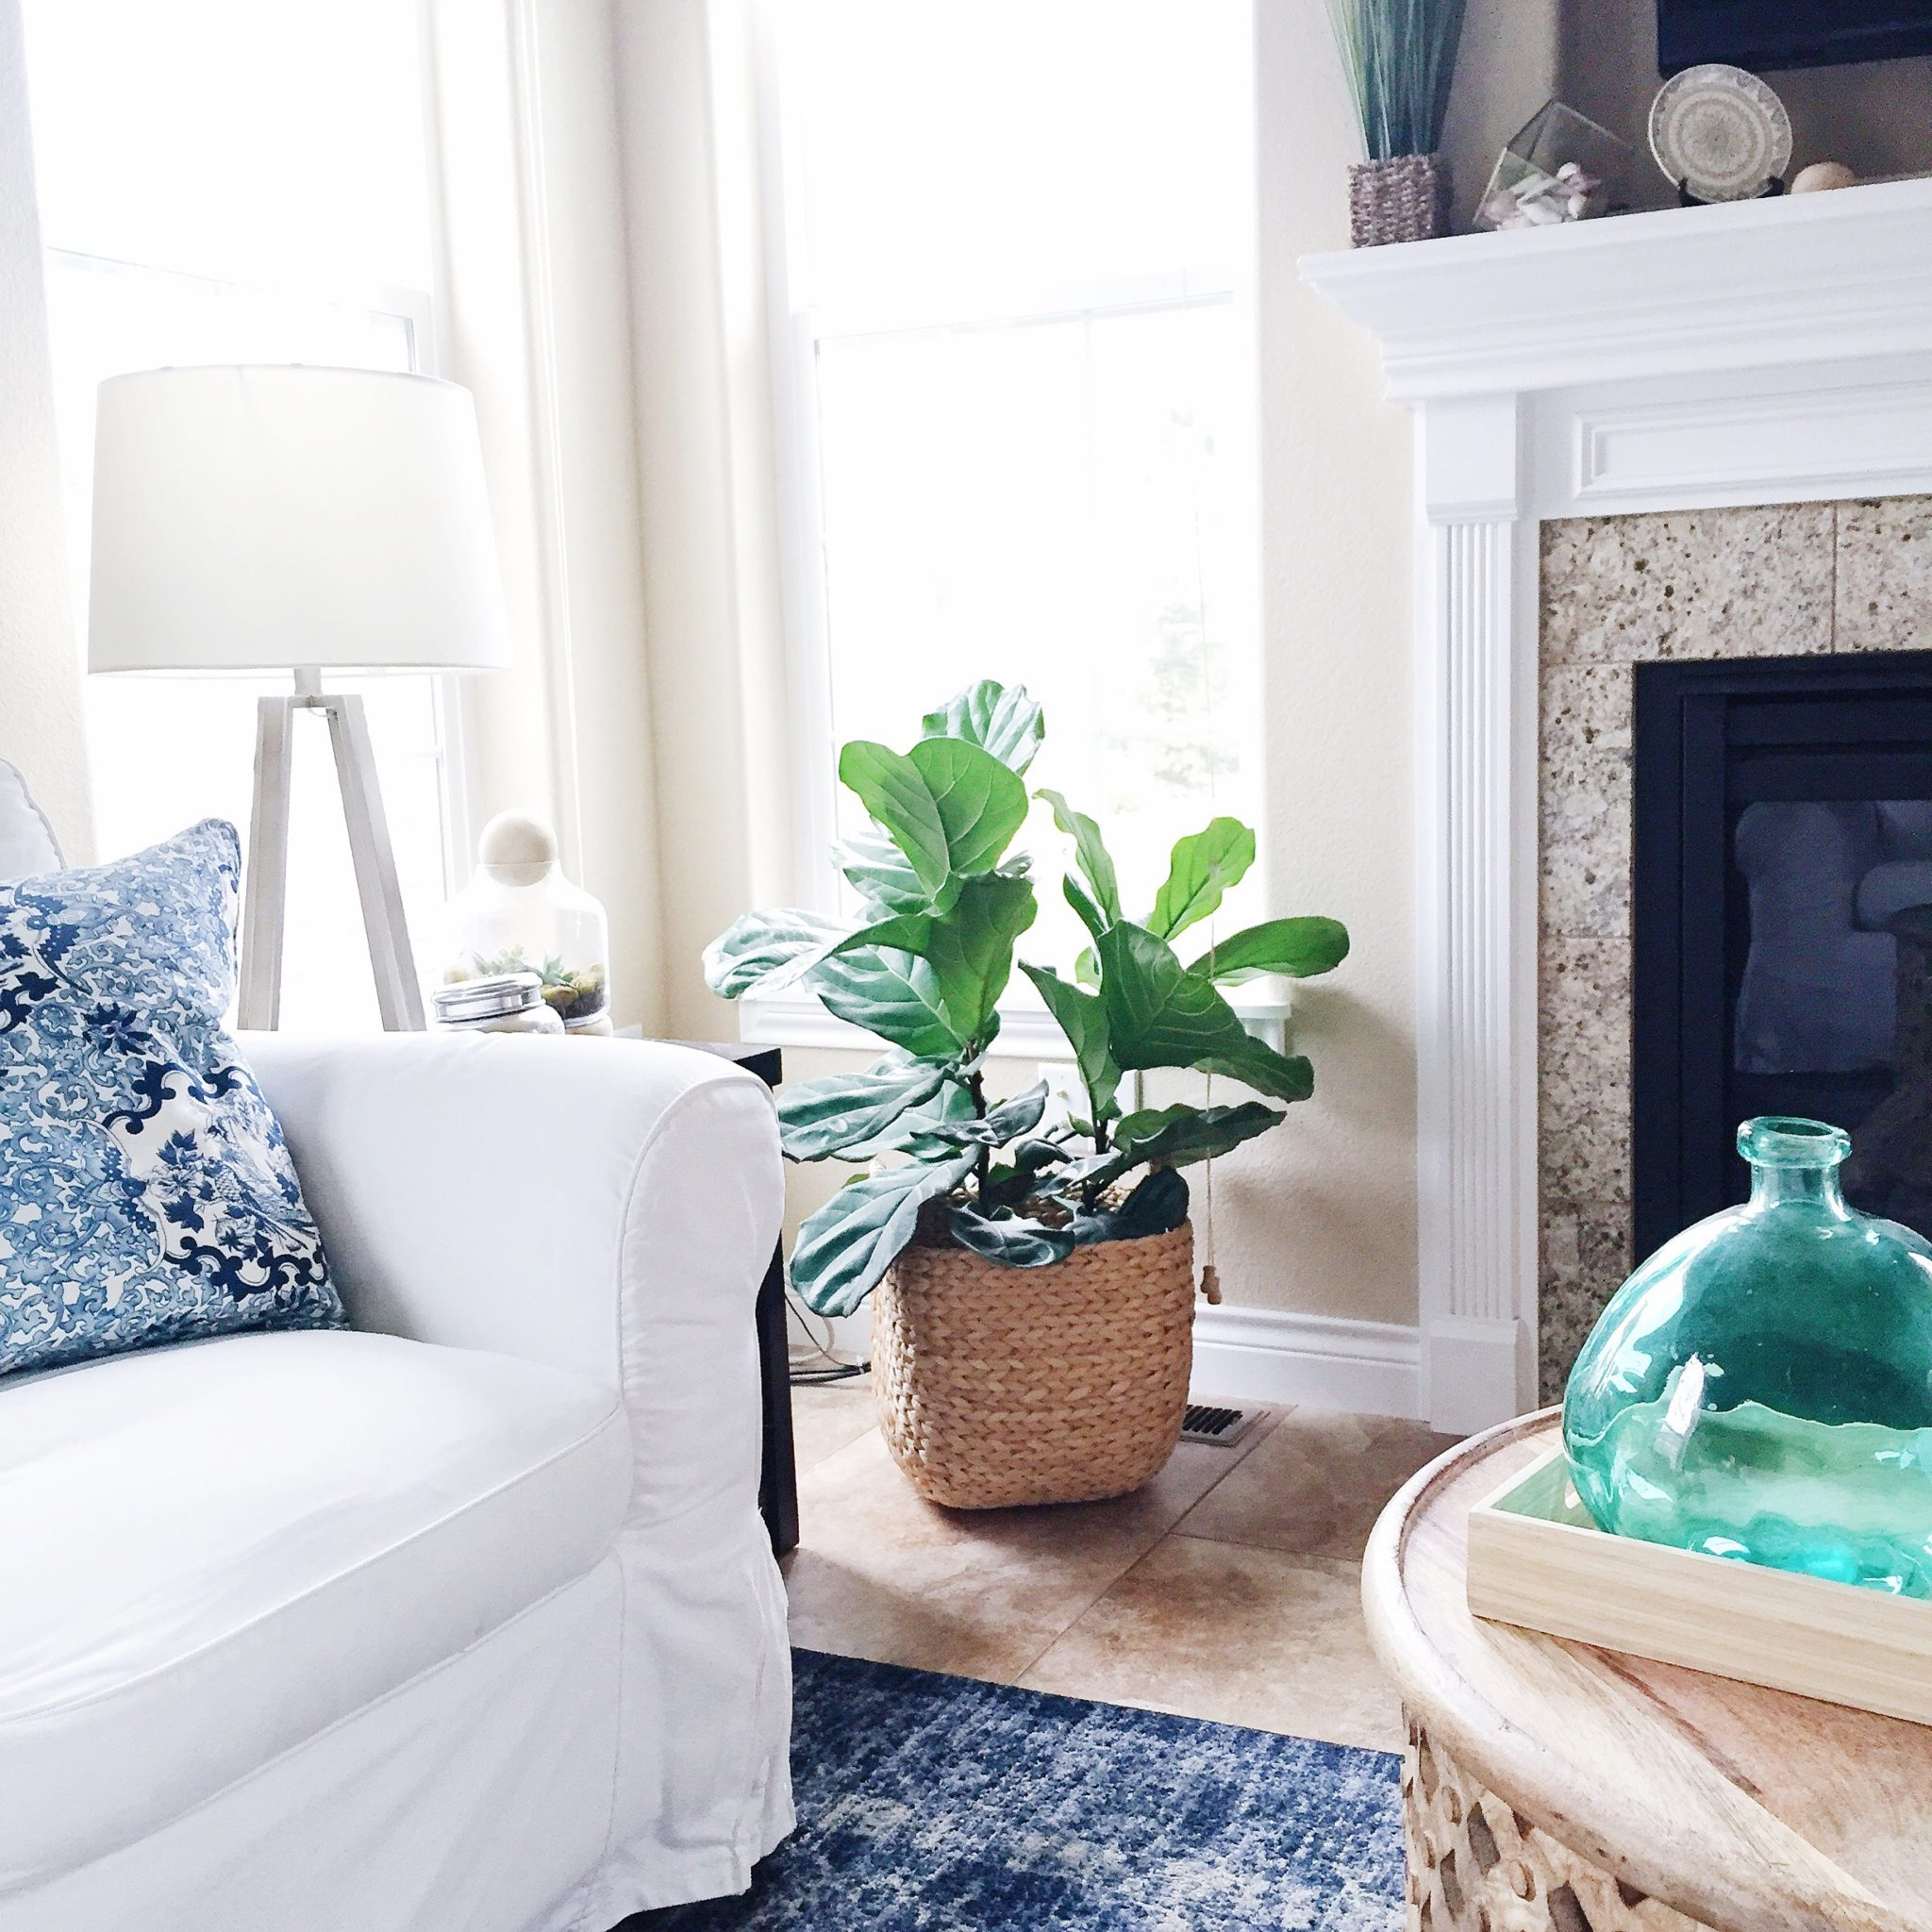 Shop The Rug Sale At Target And Get 40 Off Today Only Jane At Home